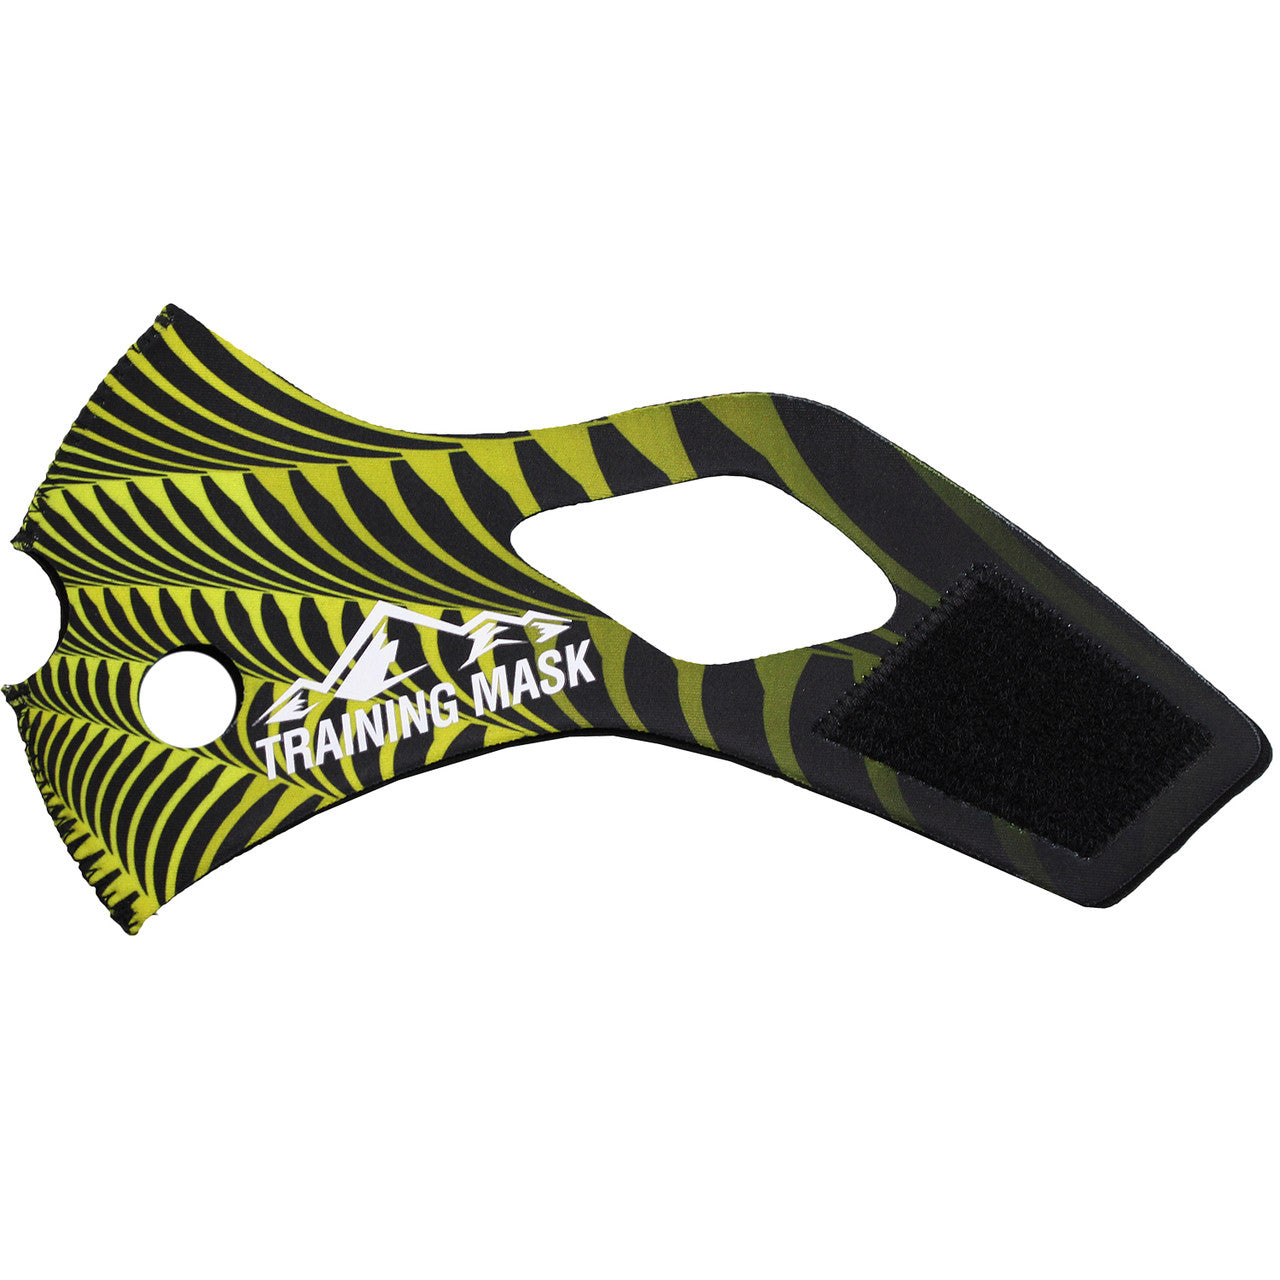 Training Mask 2.0 Sting Sleeve